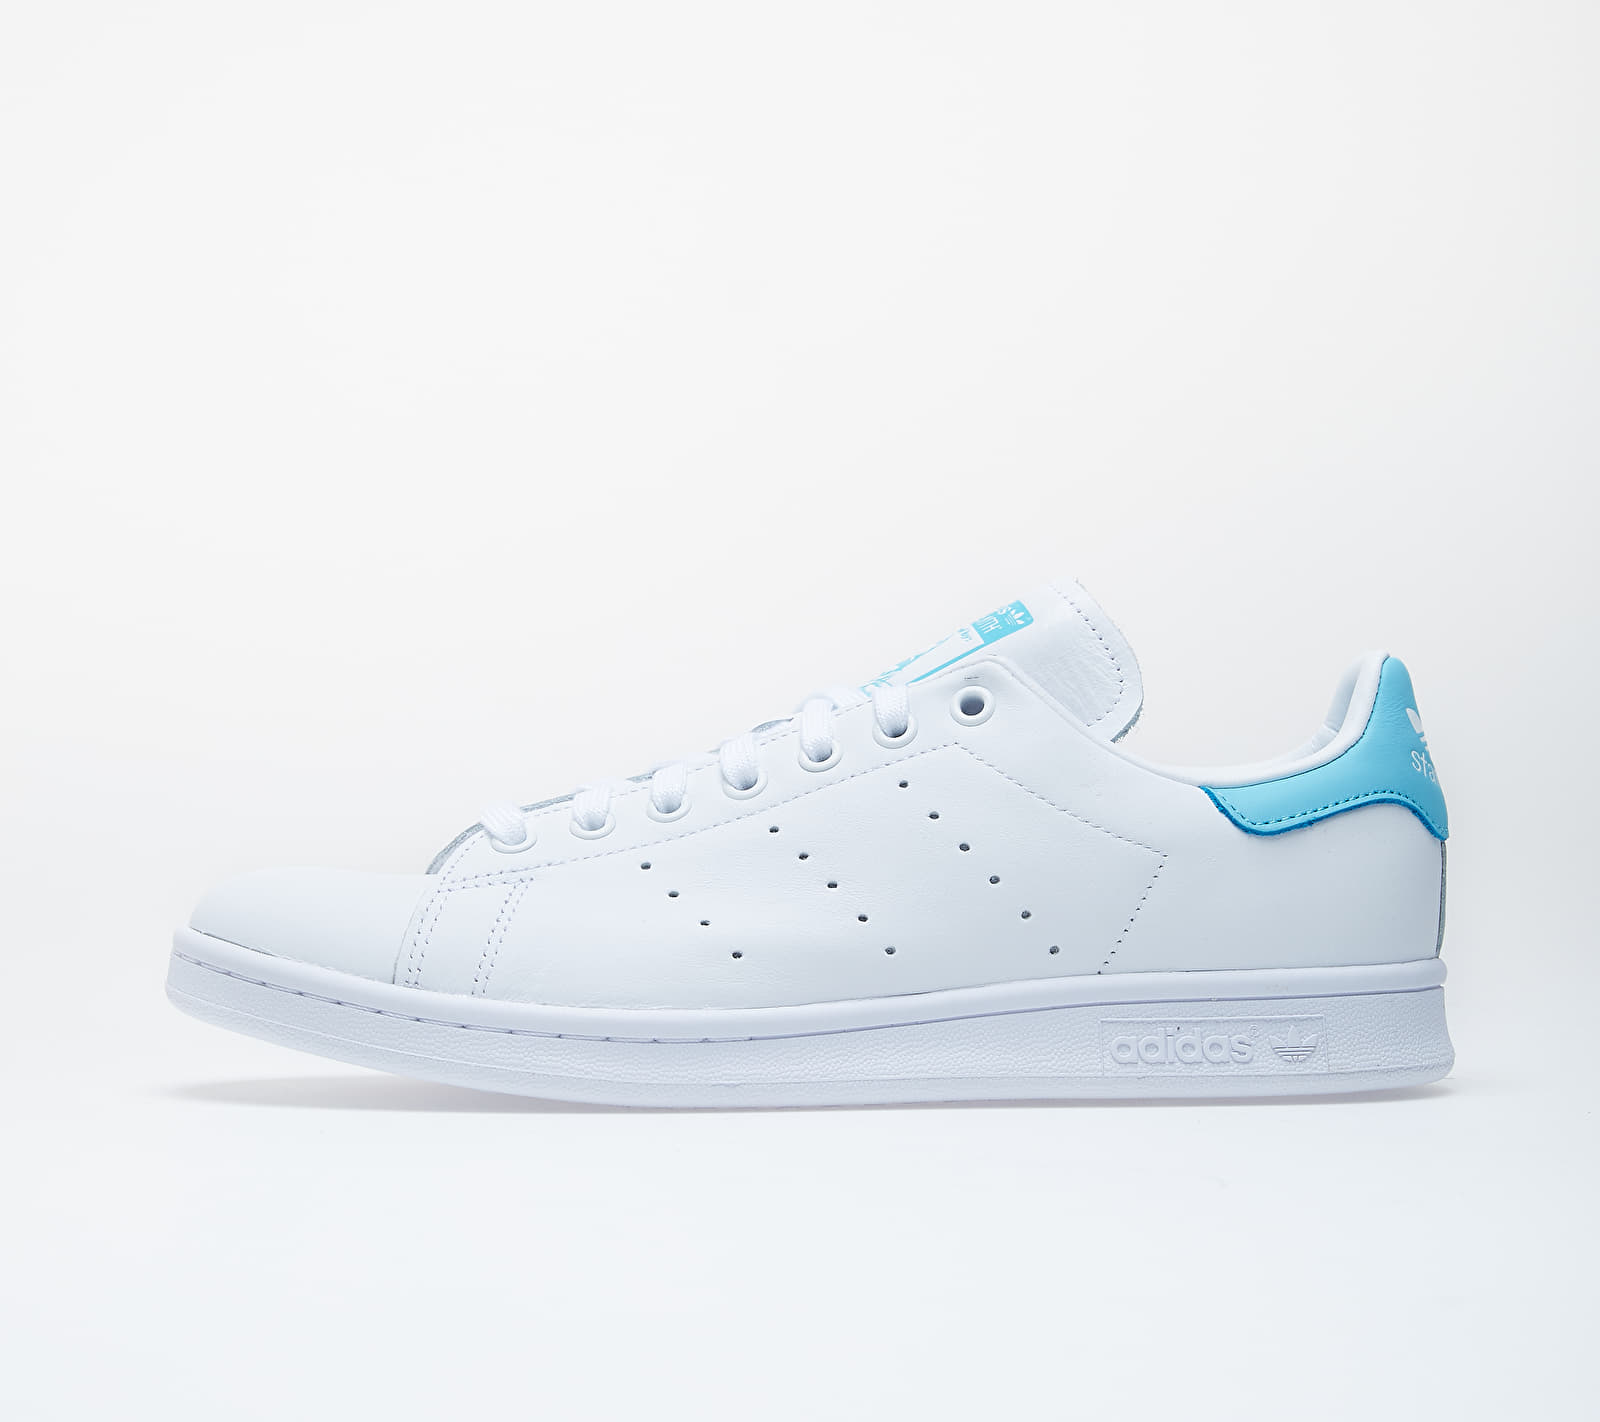 adidas Stan Smith Ftw White/ Ftw White/ Blue Glow EUR 46